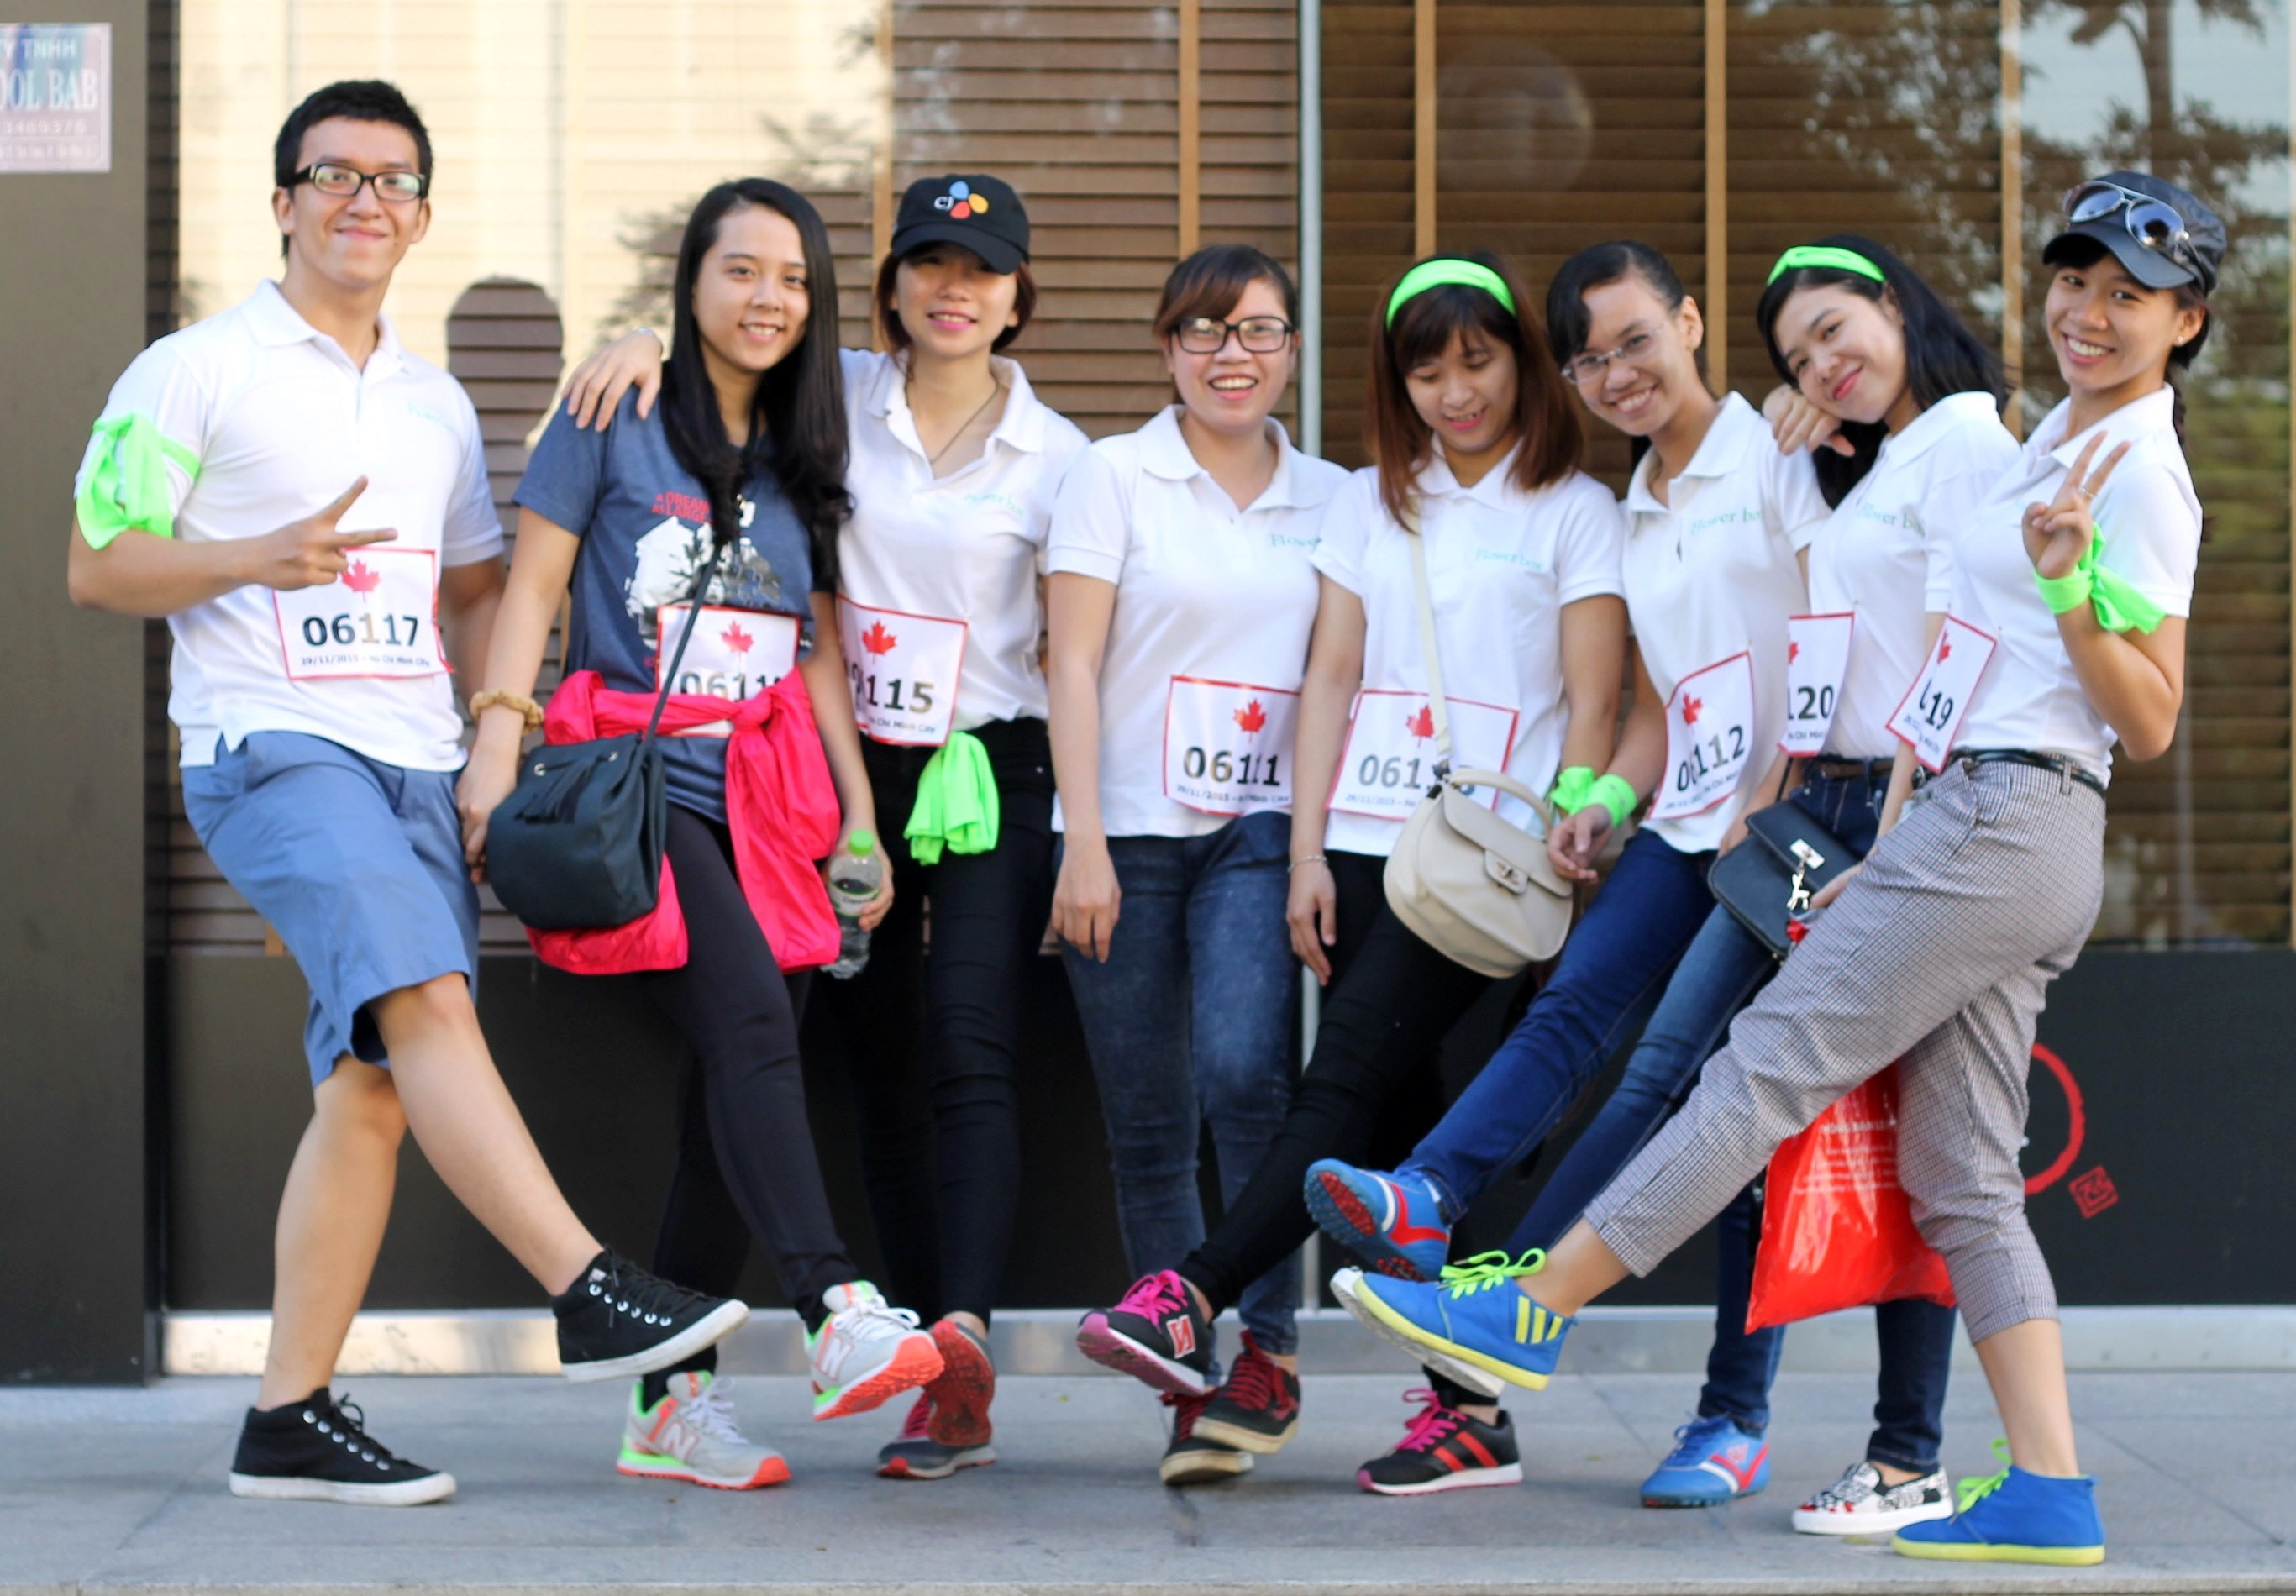 FLOWER BOX THAM GIA TERRY FOX RUN 2015